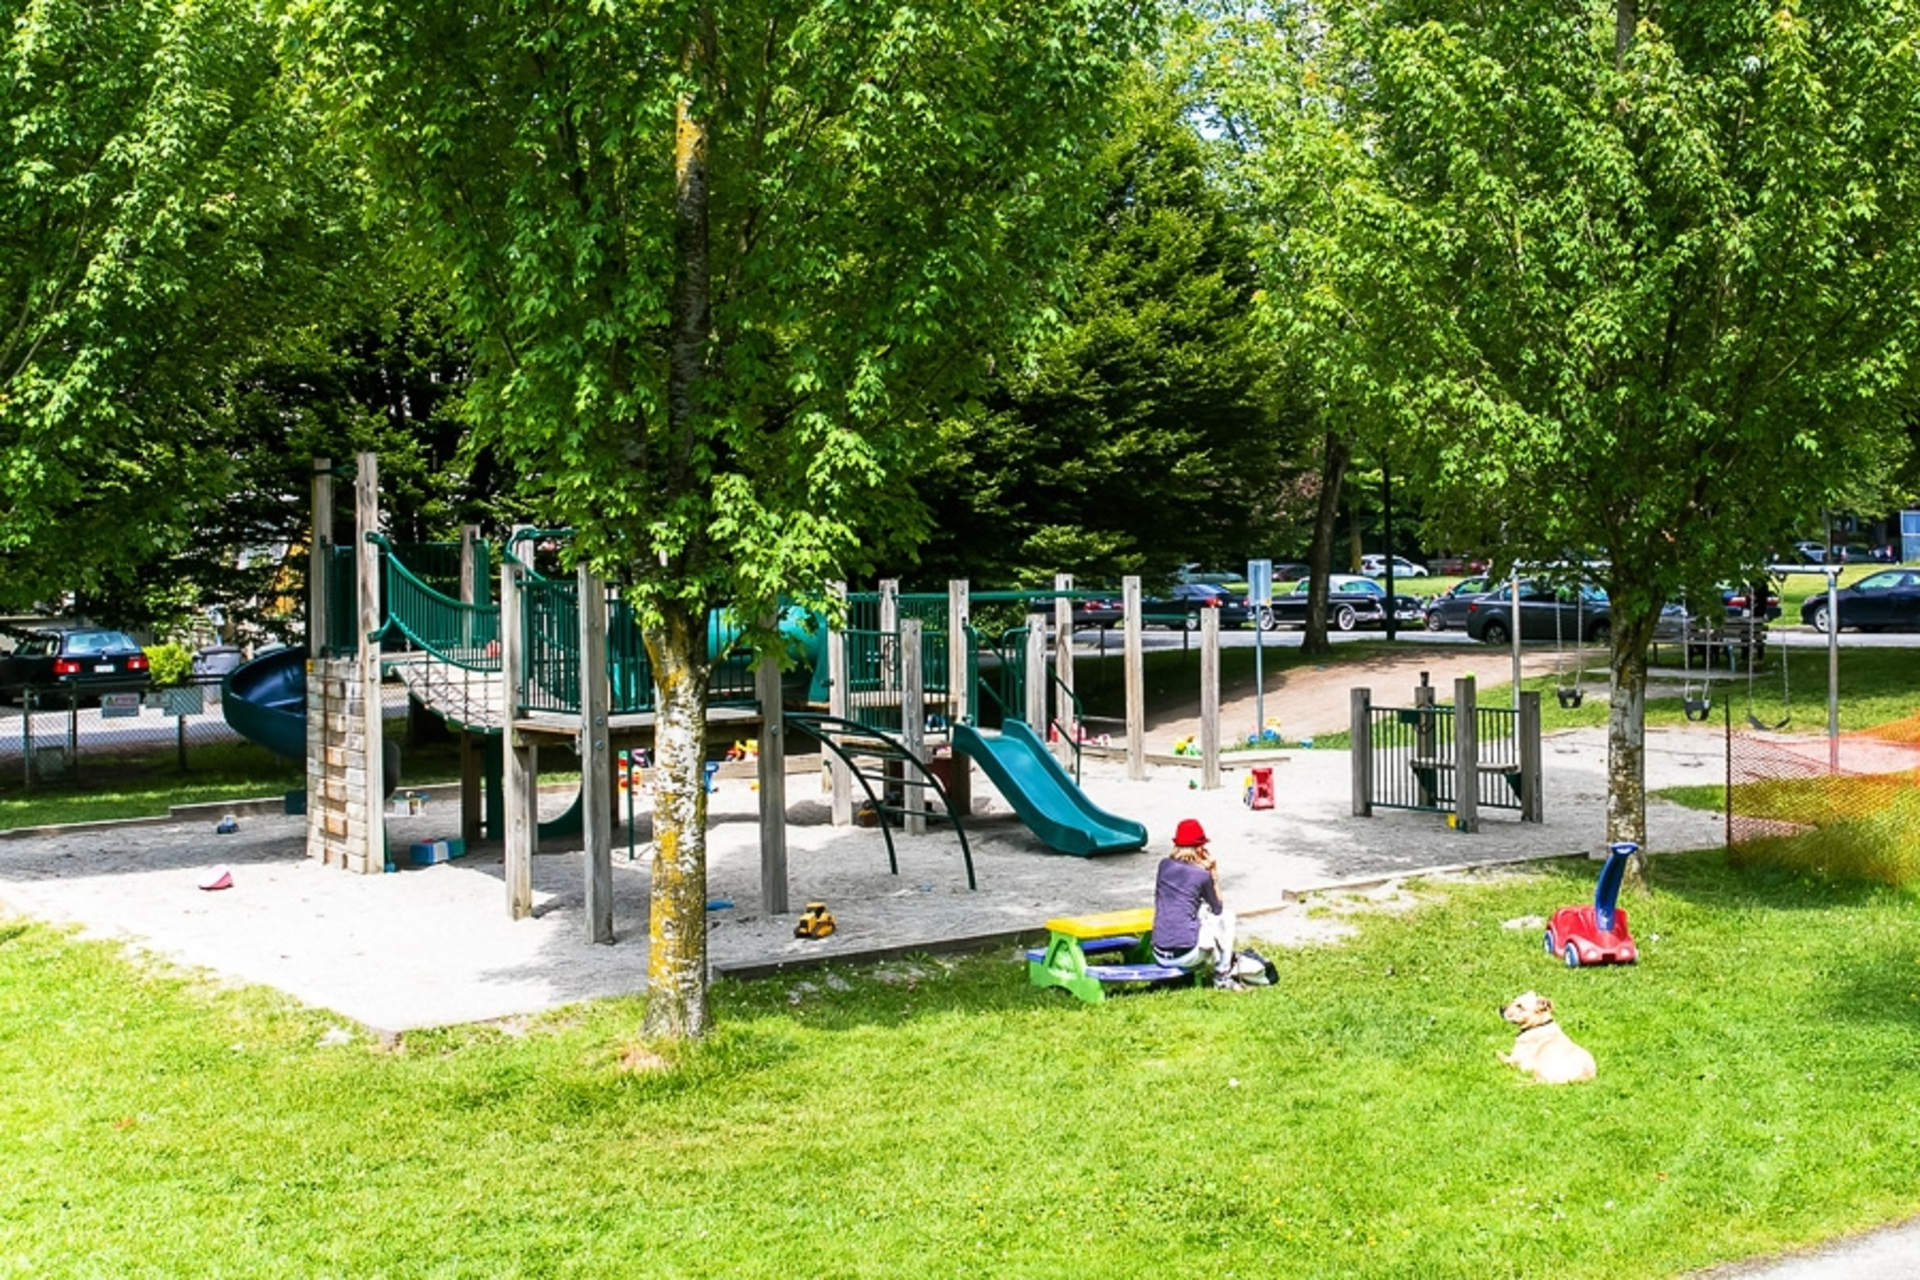 Children's play area at 1706 West 15th Avenue, Vancouver West